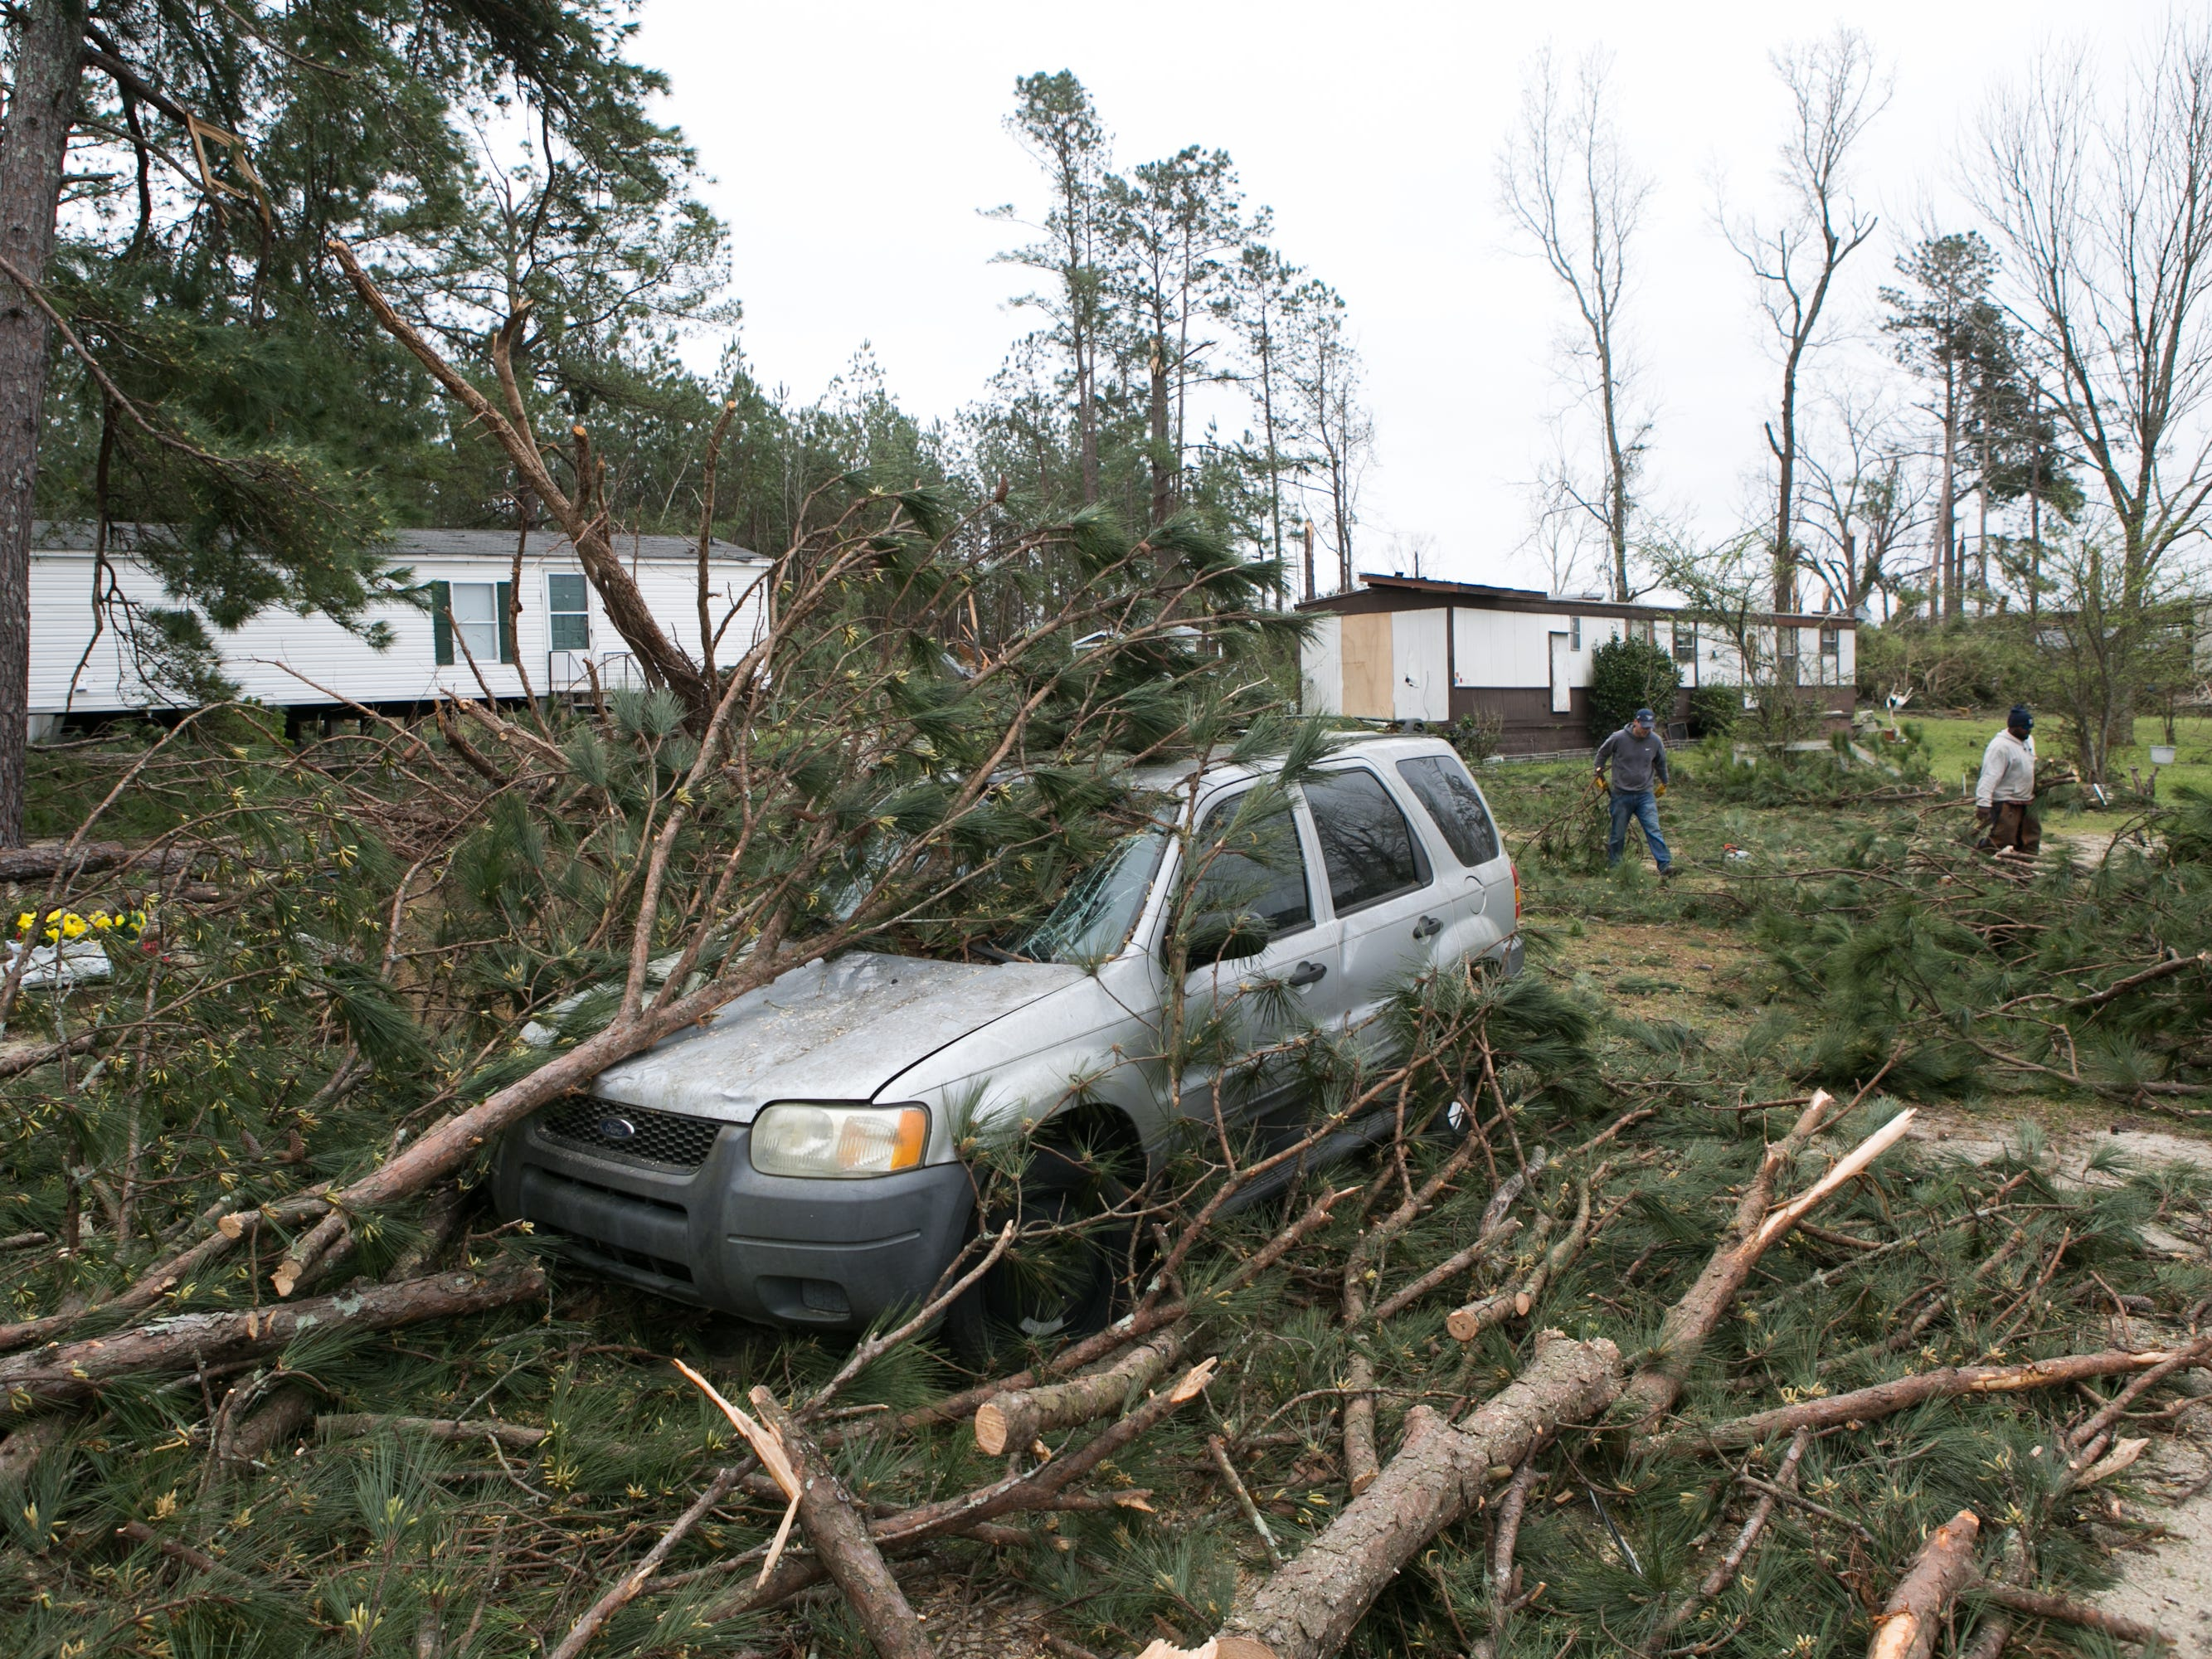 Volunteers and residents clean up trees and debris from a tornado at a home on March 4, 2019 in Beauregard, Ala.